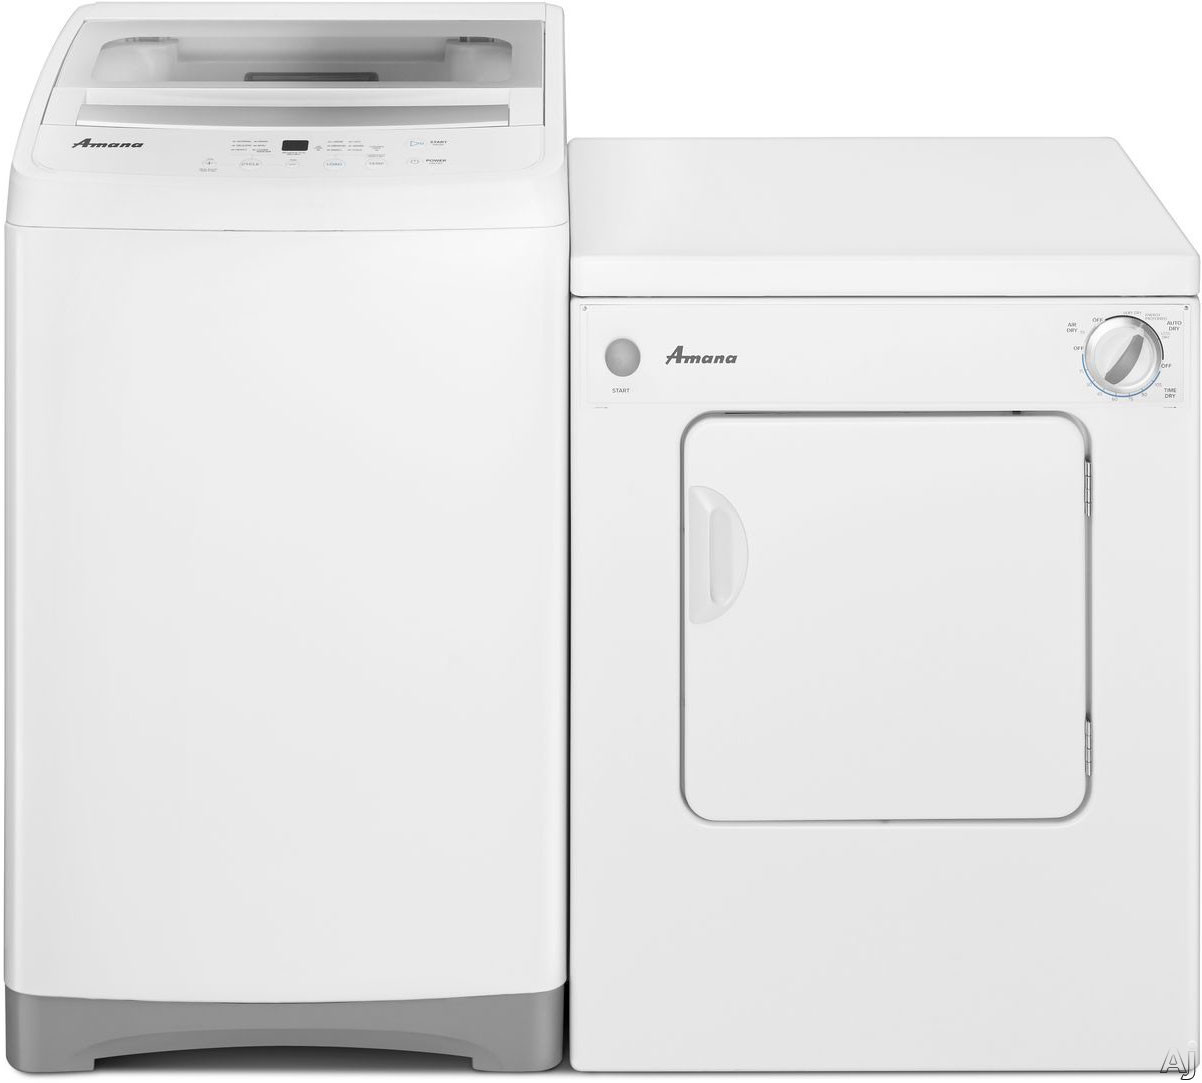 Picture of Amana AMWADREW4 Side-by-Side Washer  Dryer Set with Top Load Washer and Electric Dryer in White